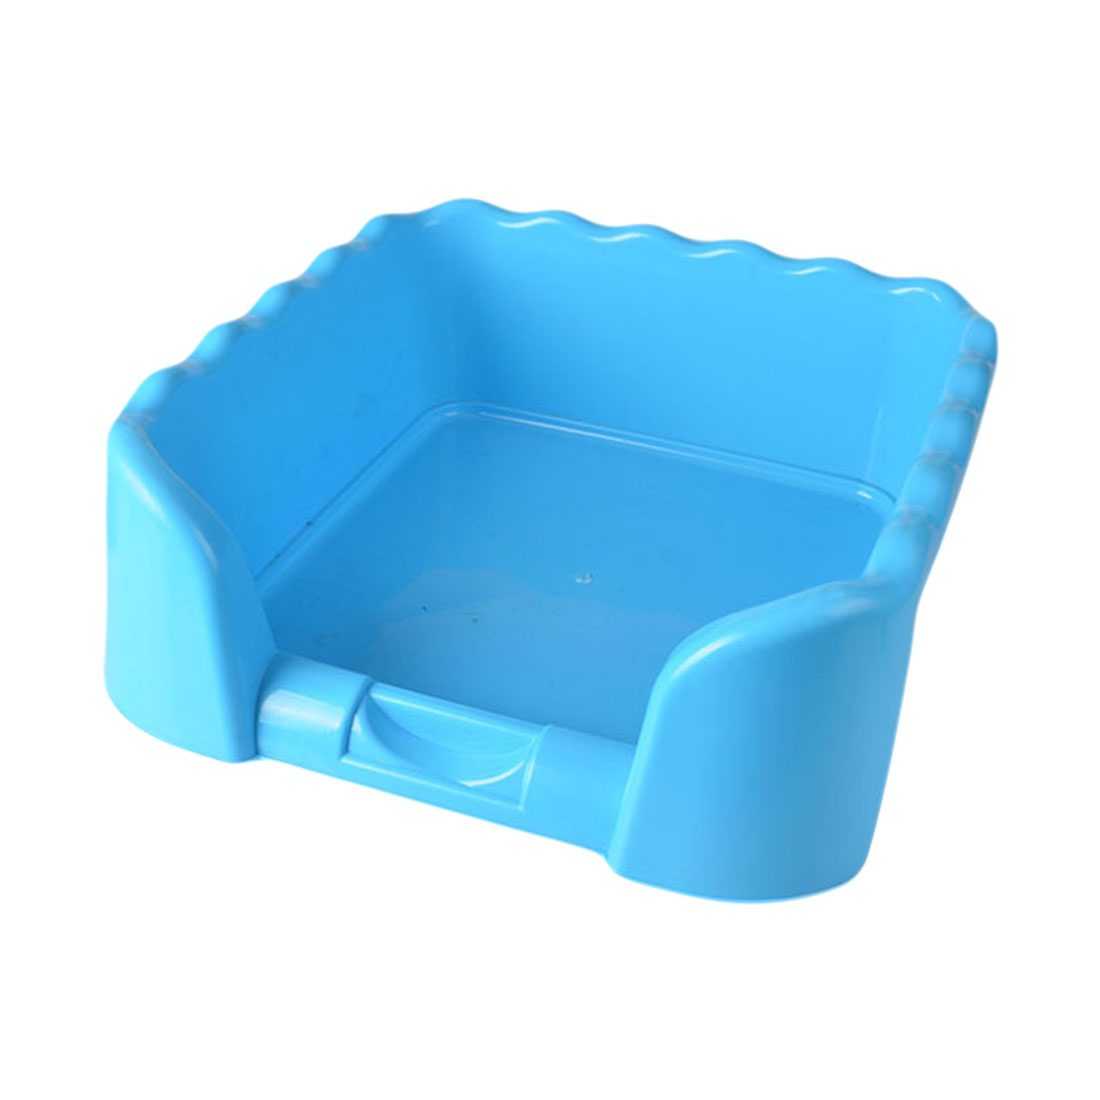 Portable Puppy Training Tray with Fence for Pet Dogs and Cats Potty and Pee Training Indoor 5